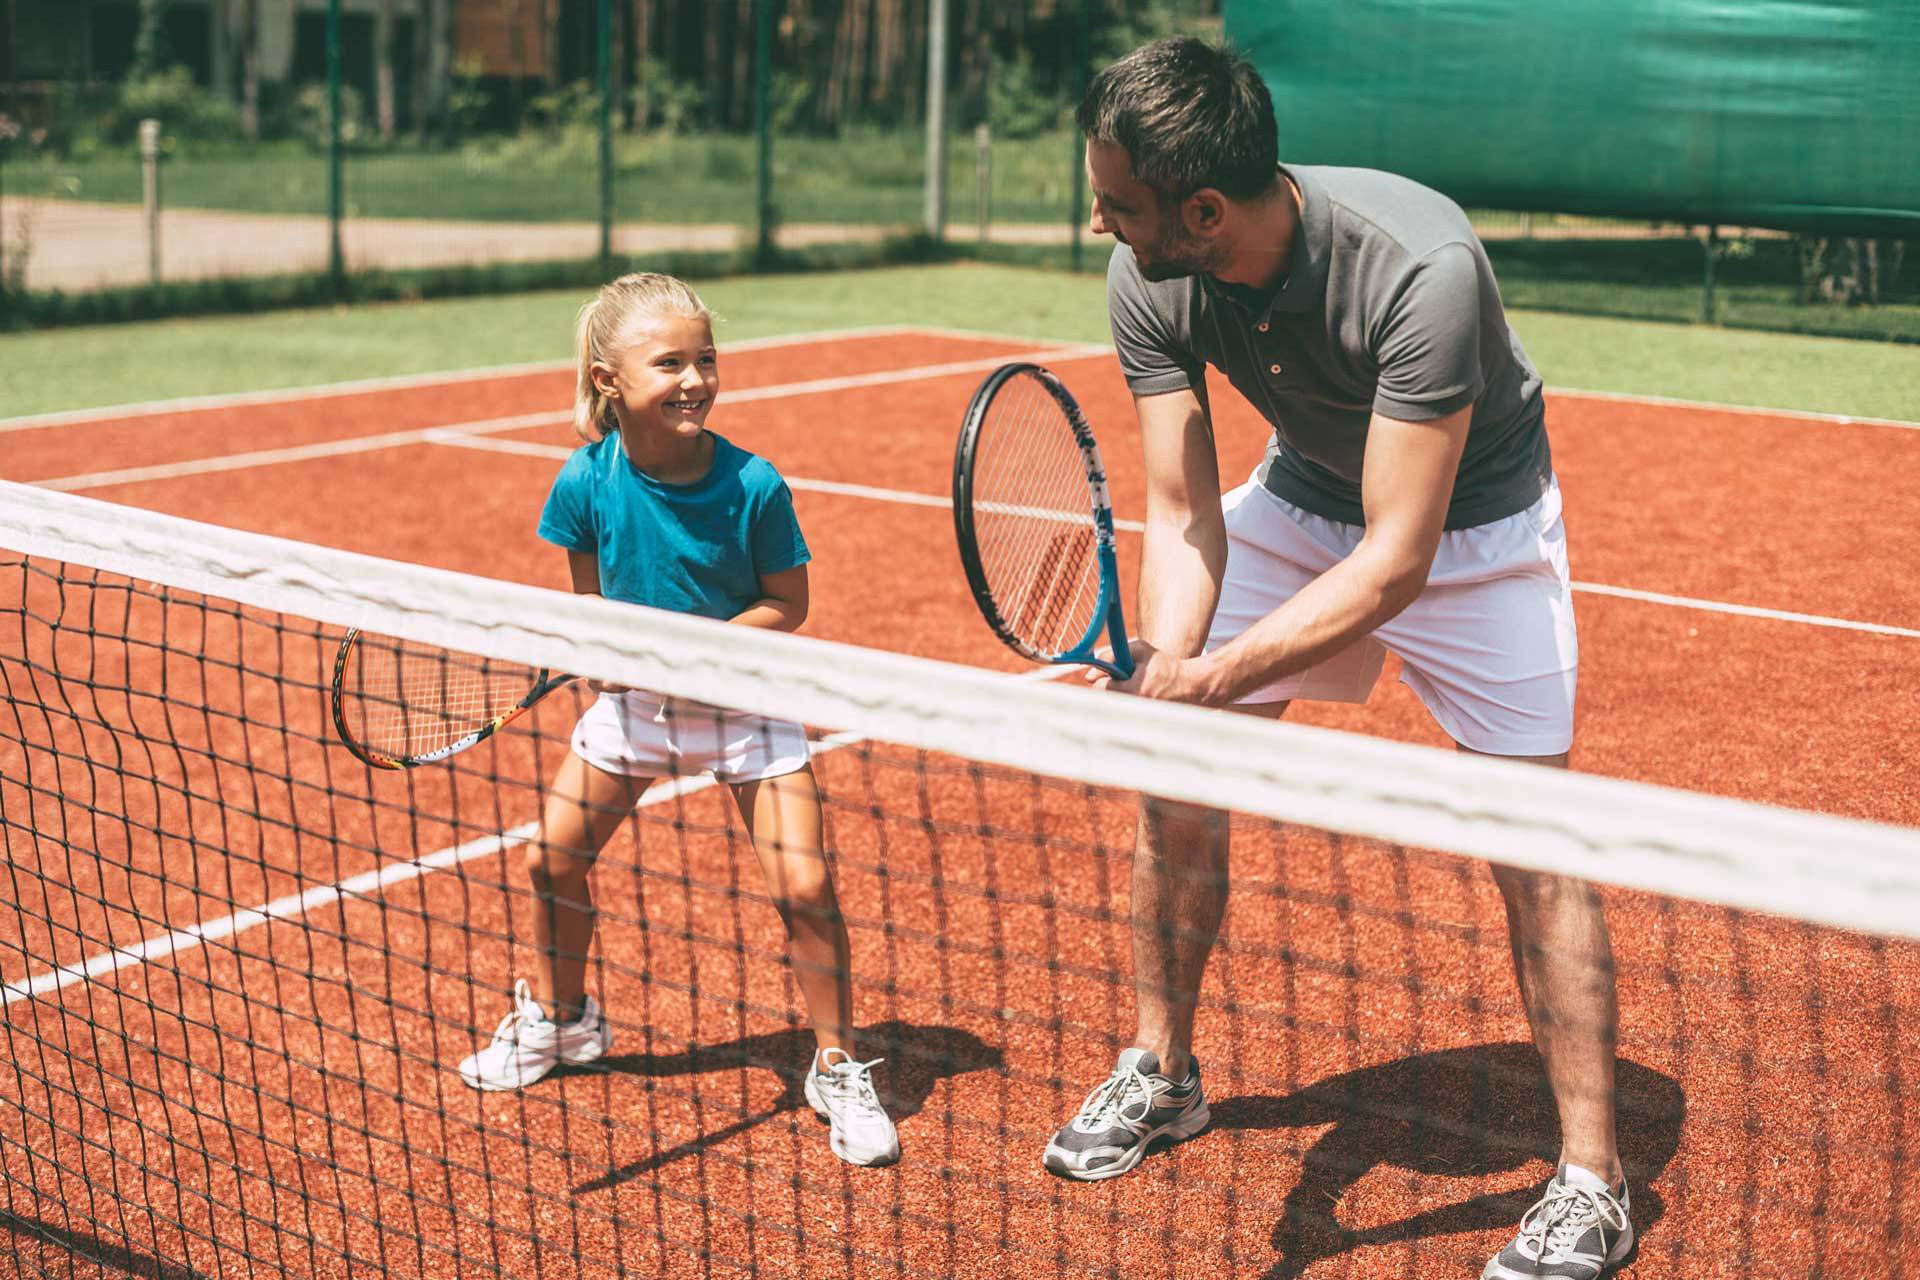 The Basics Of The Game of Tennis